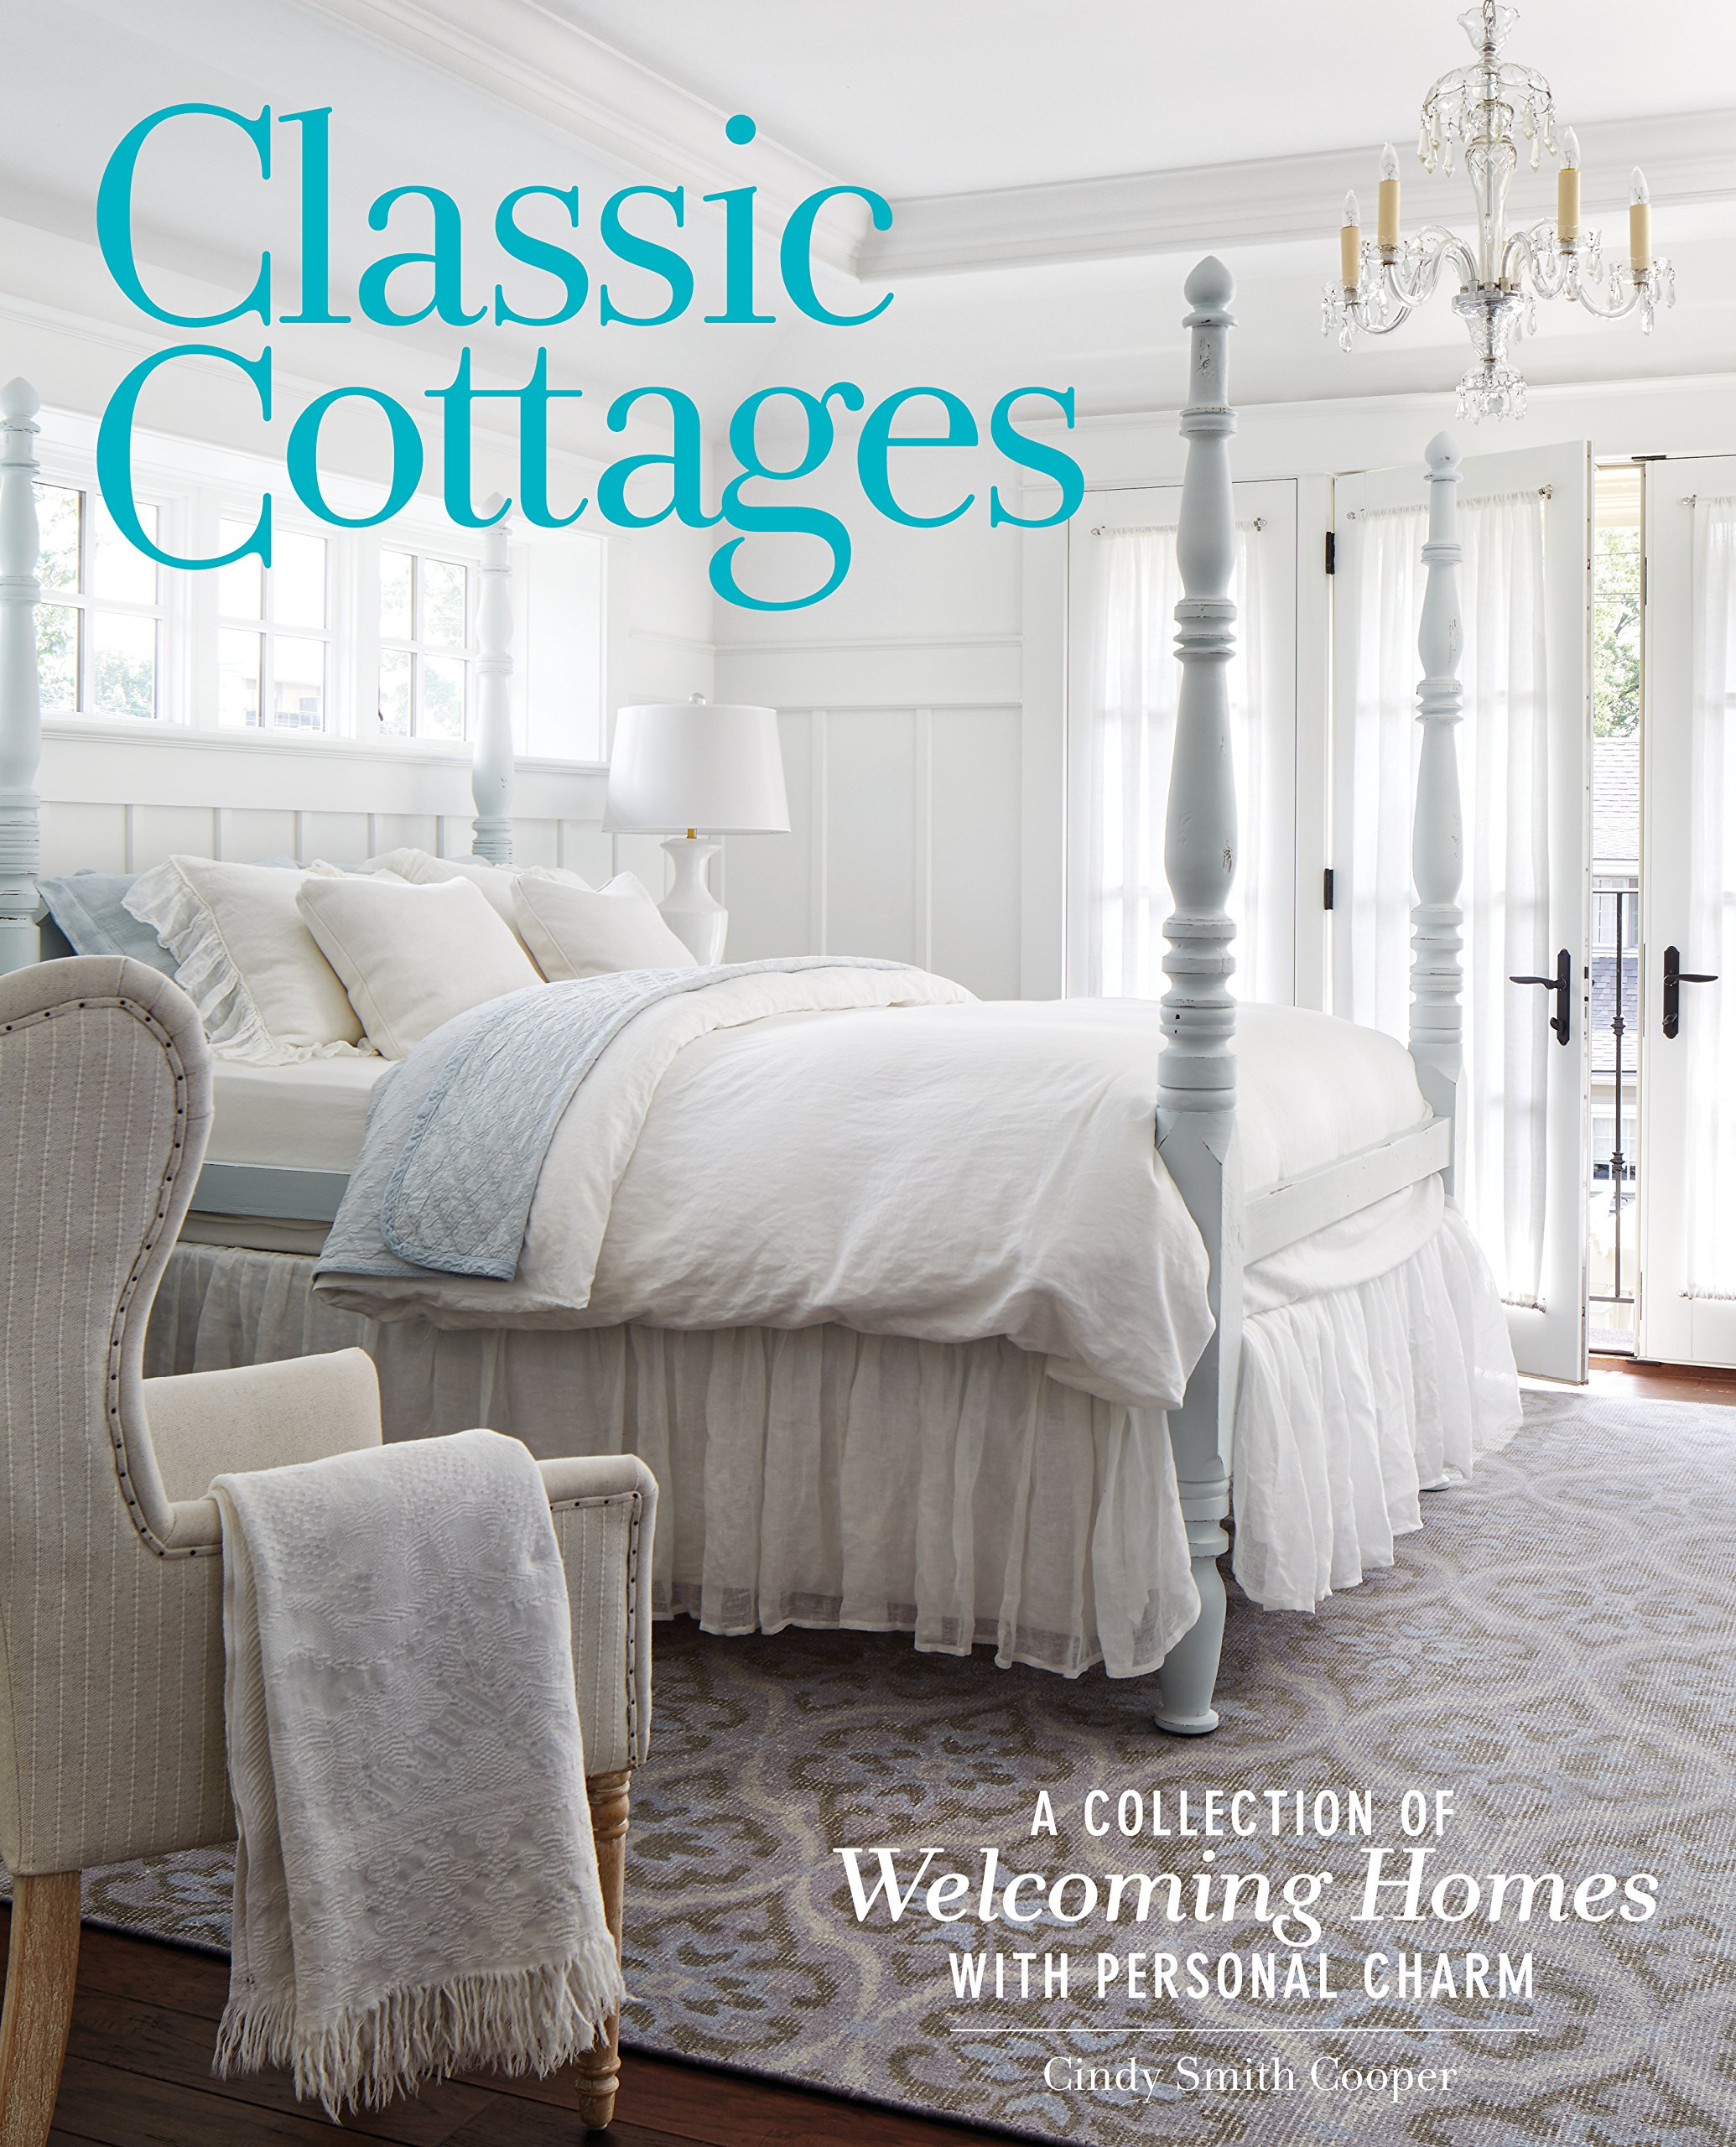 Classic Cottages: A Passion for Home: Cindy Cooper: 9781940772509 ...